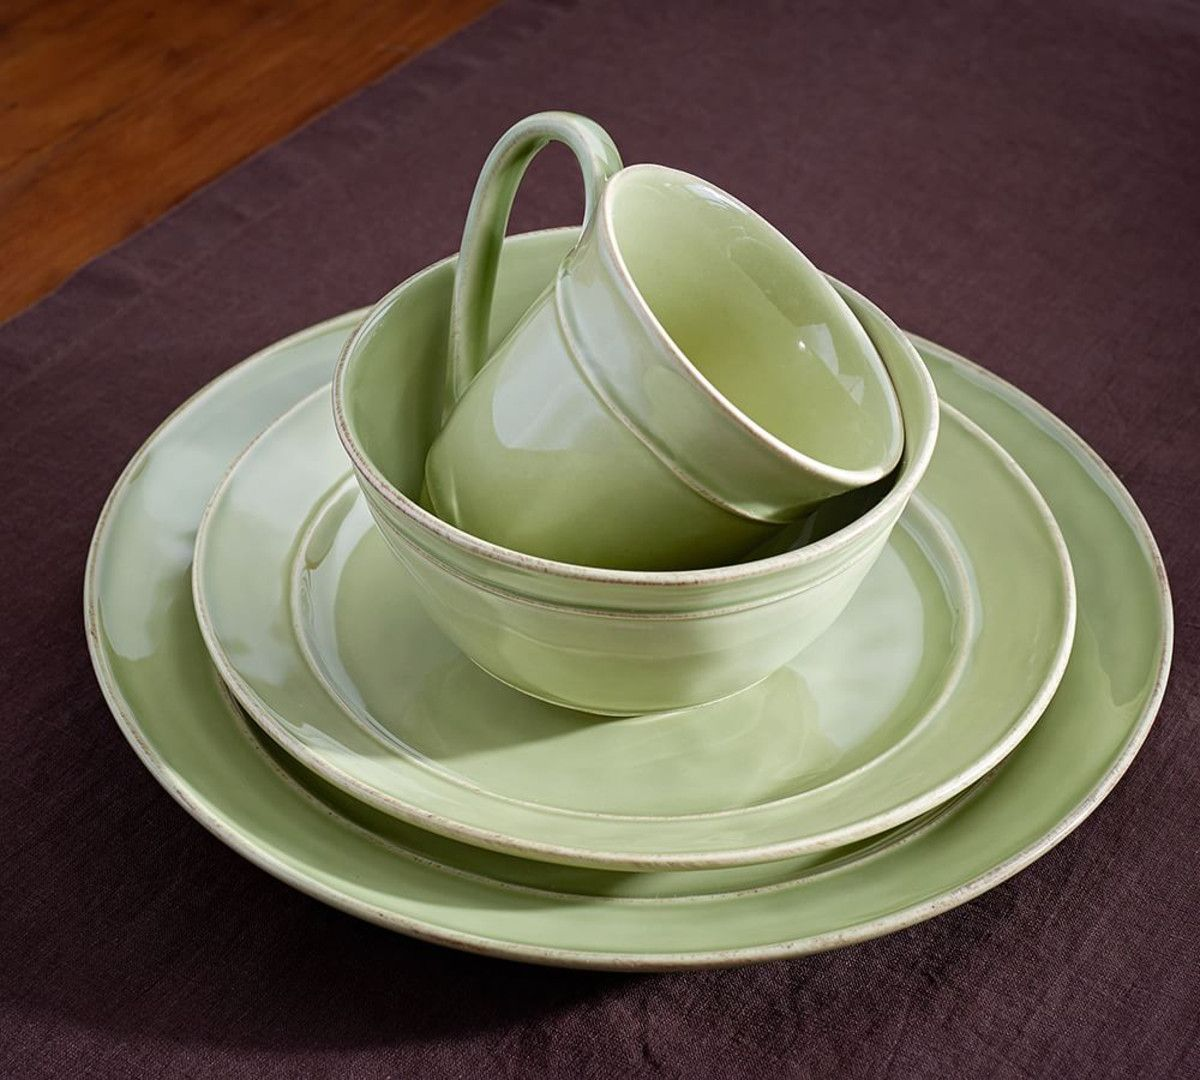 Cambria Dinnerware - Mint & Cambria Dinnerware - Mint | Apartment Stuff | Pinterest | Dinnerware ...